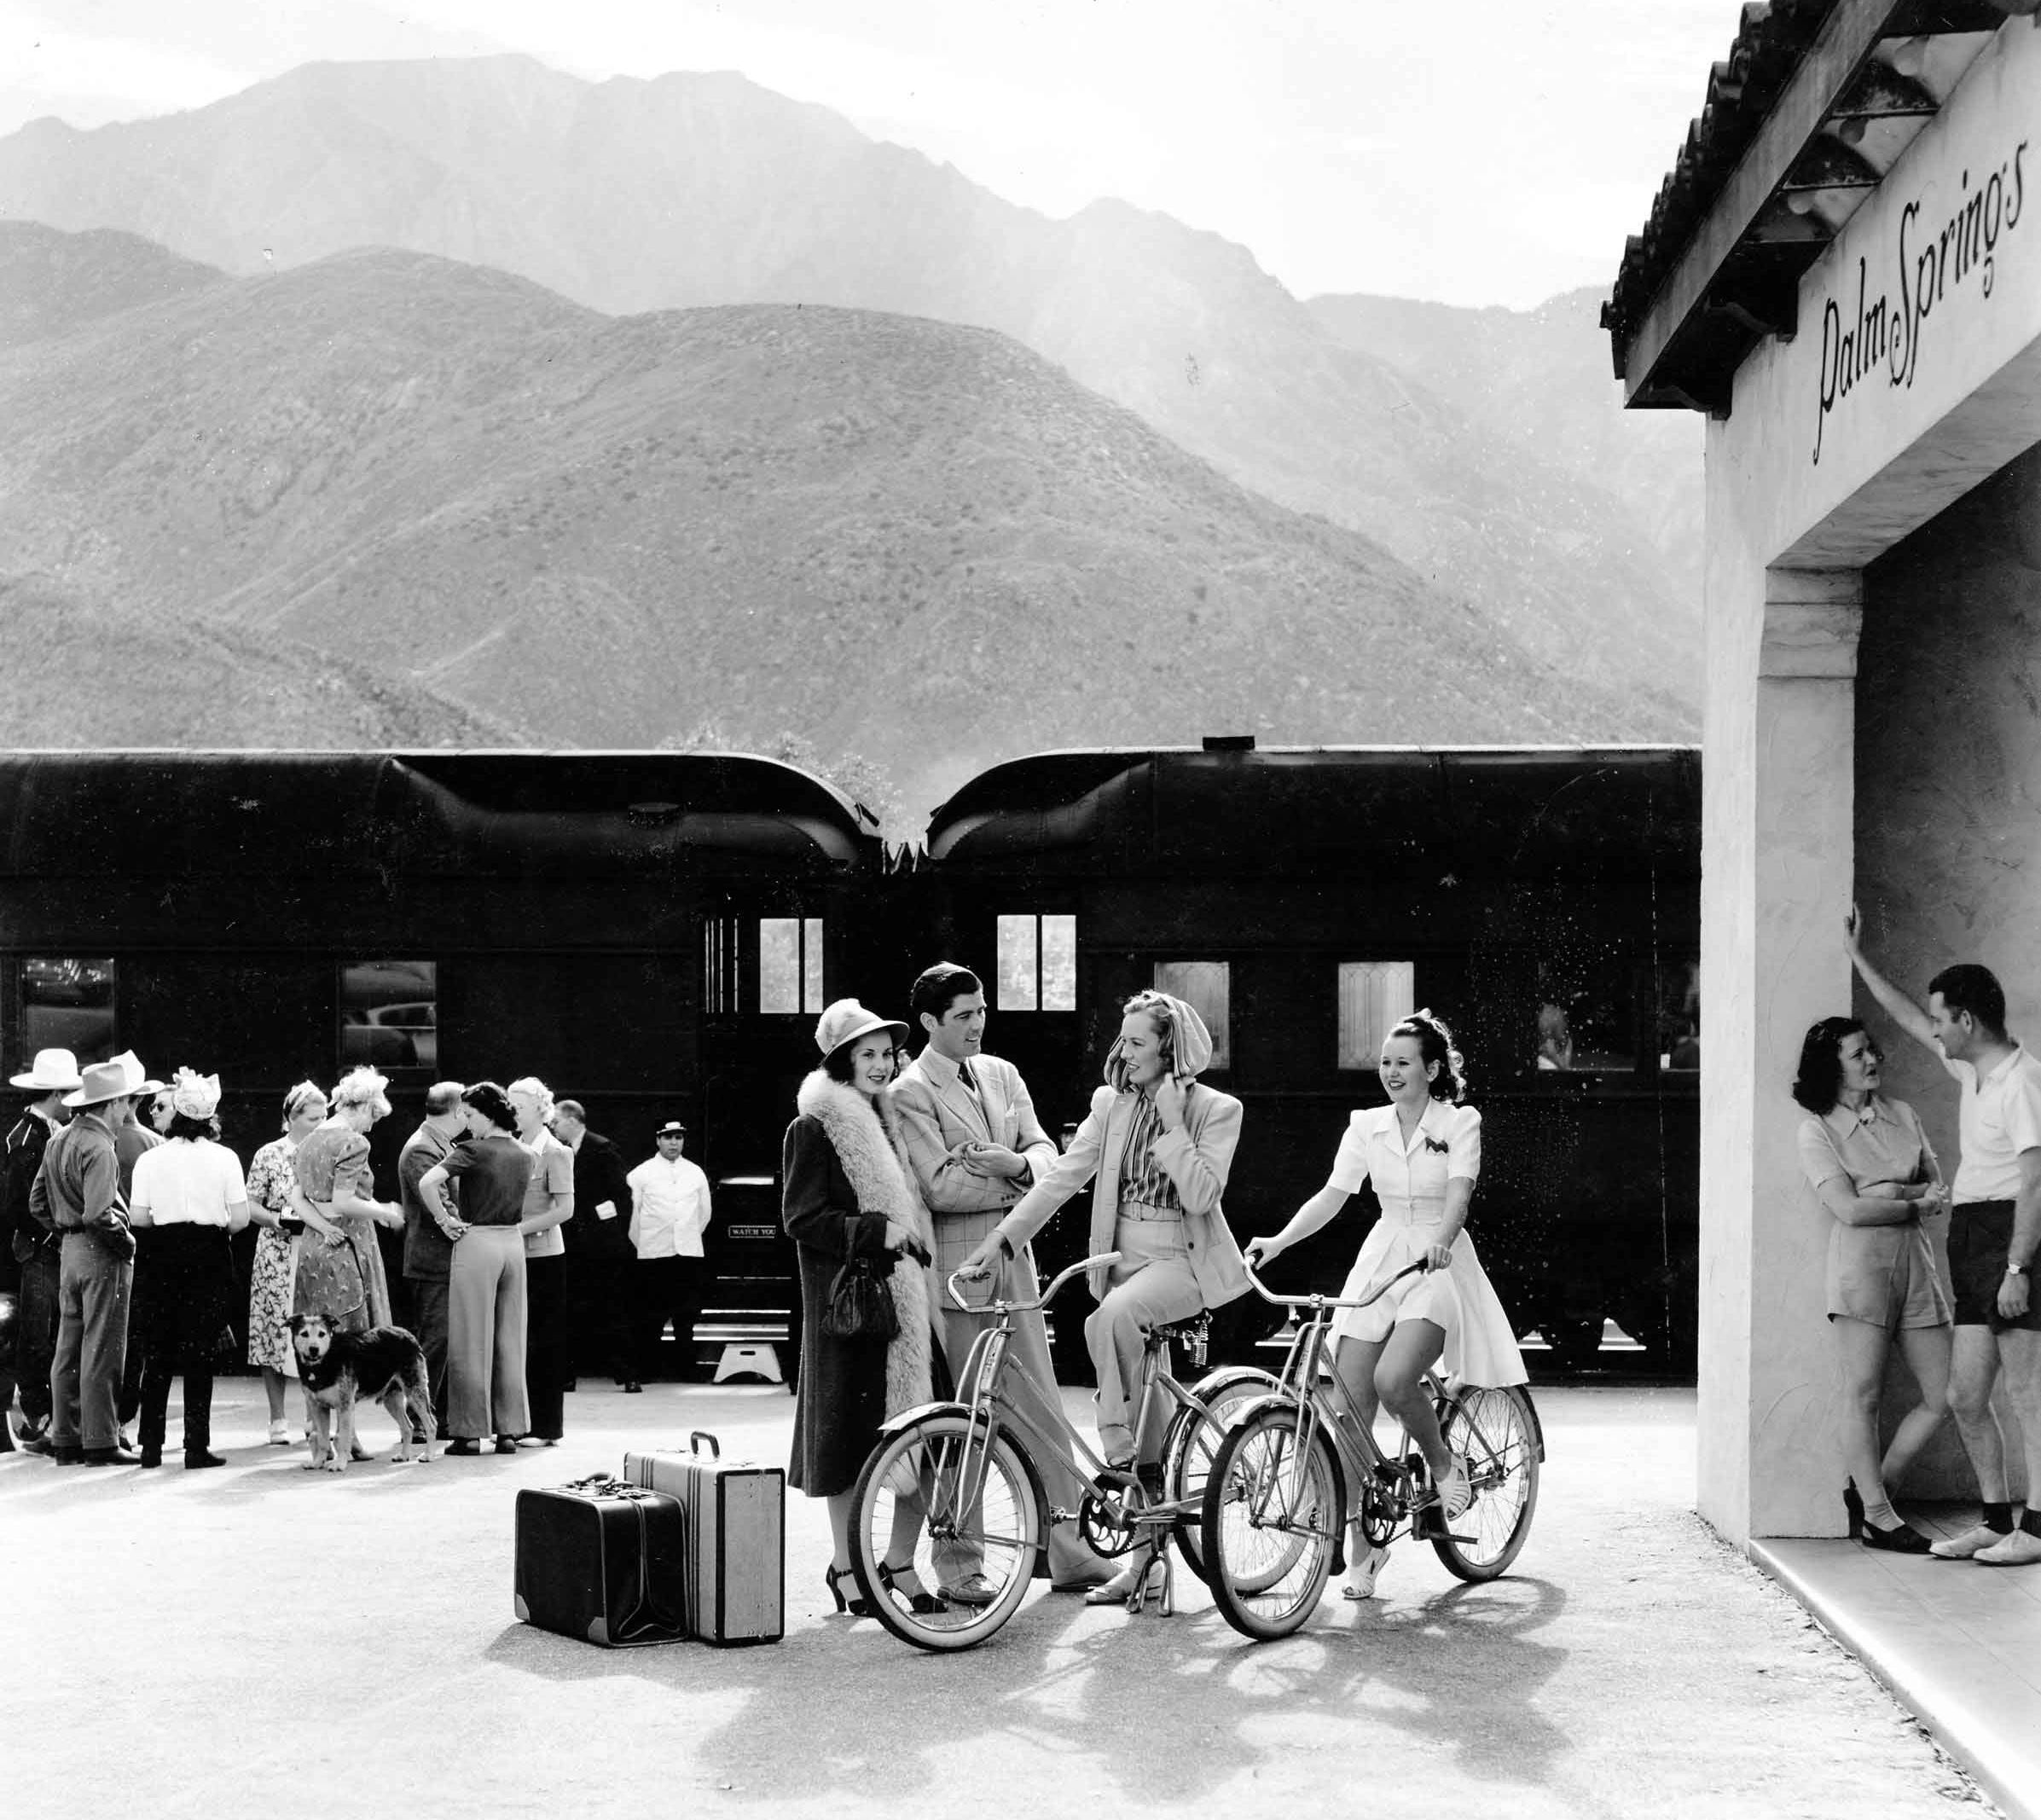 Palm Springs train depot in 1939 with I. Magnin store models posing for photographers.